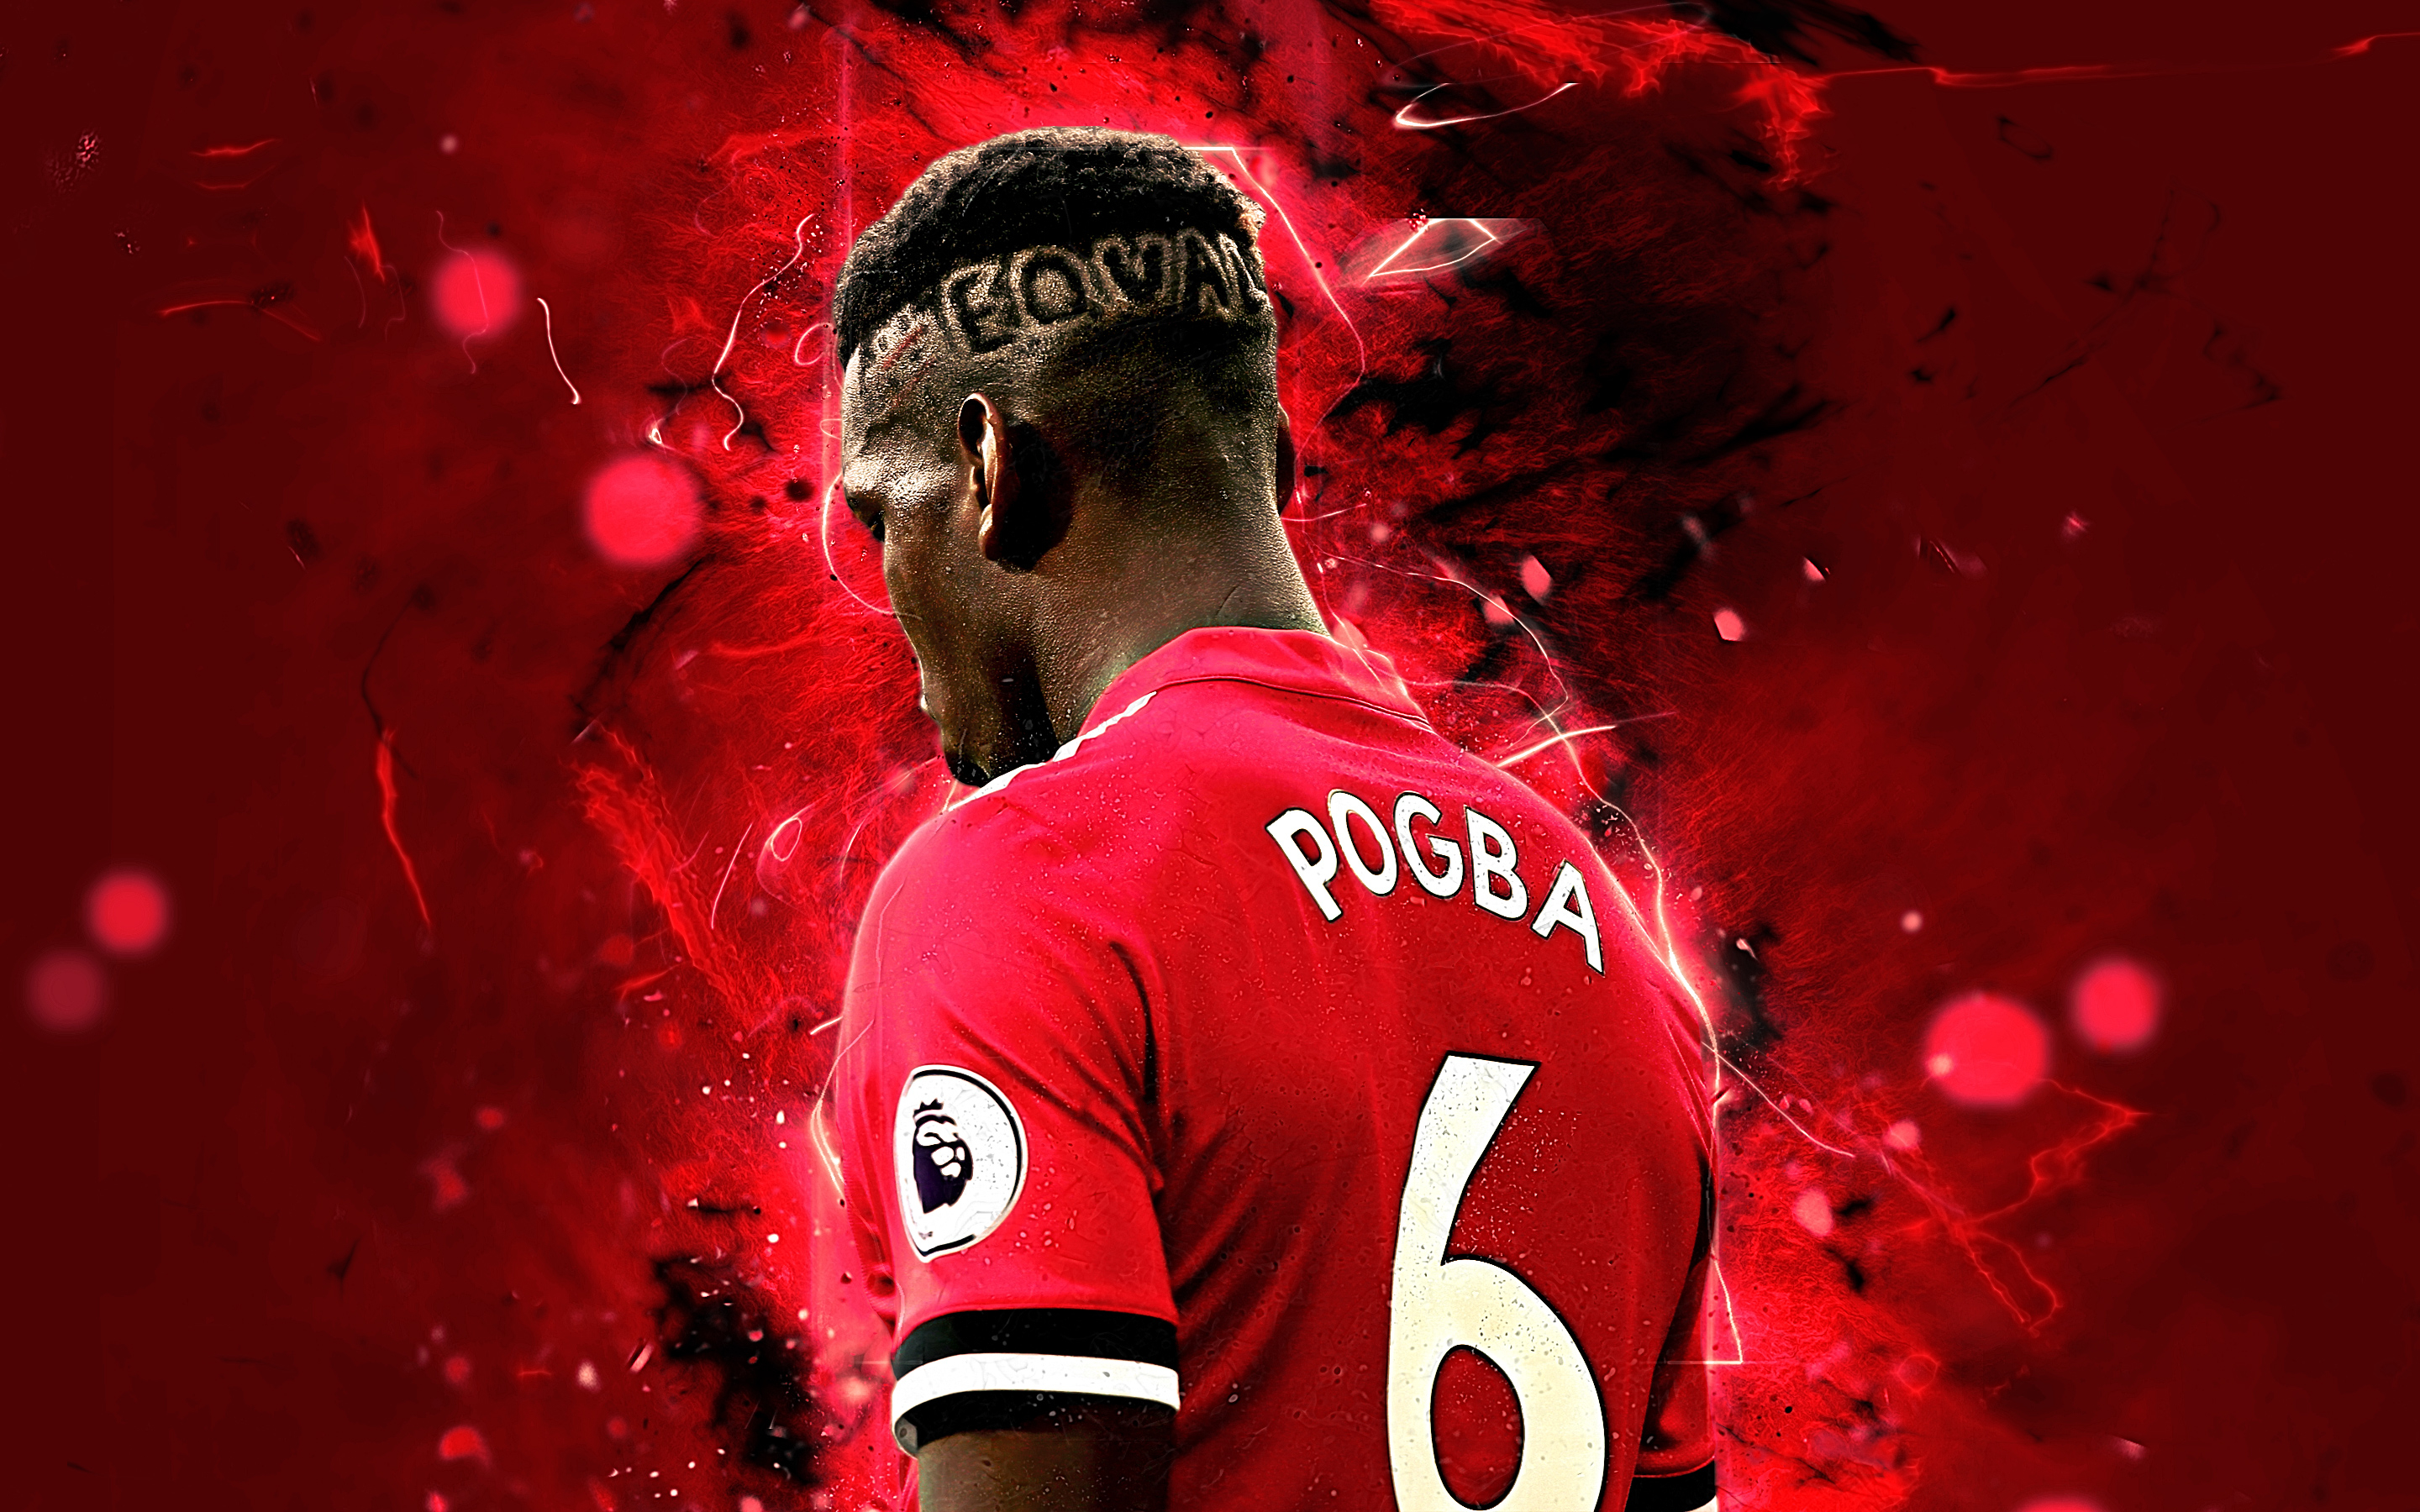 Paul Pogba HD Wallpaper